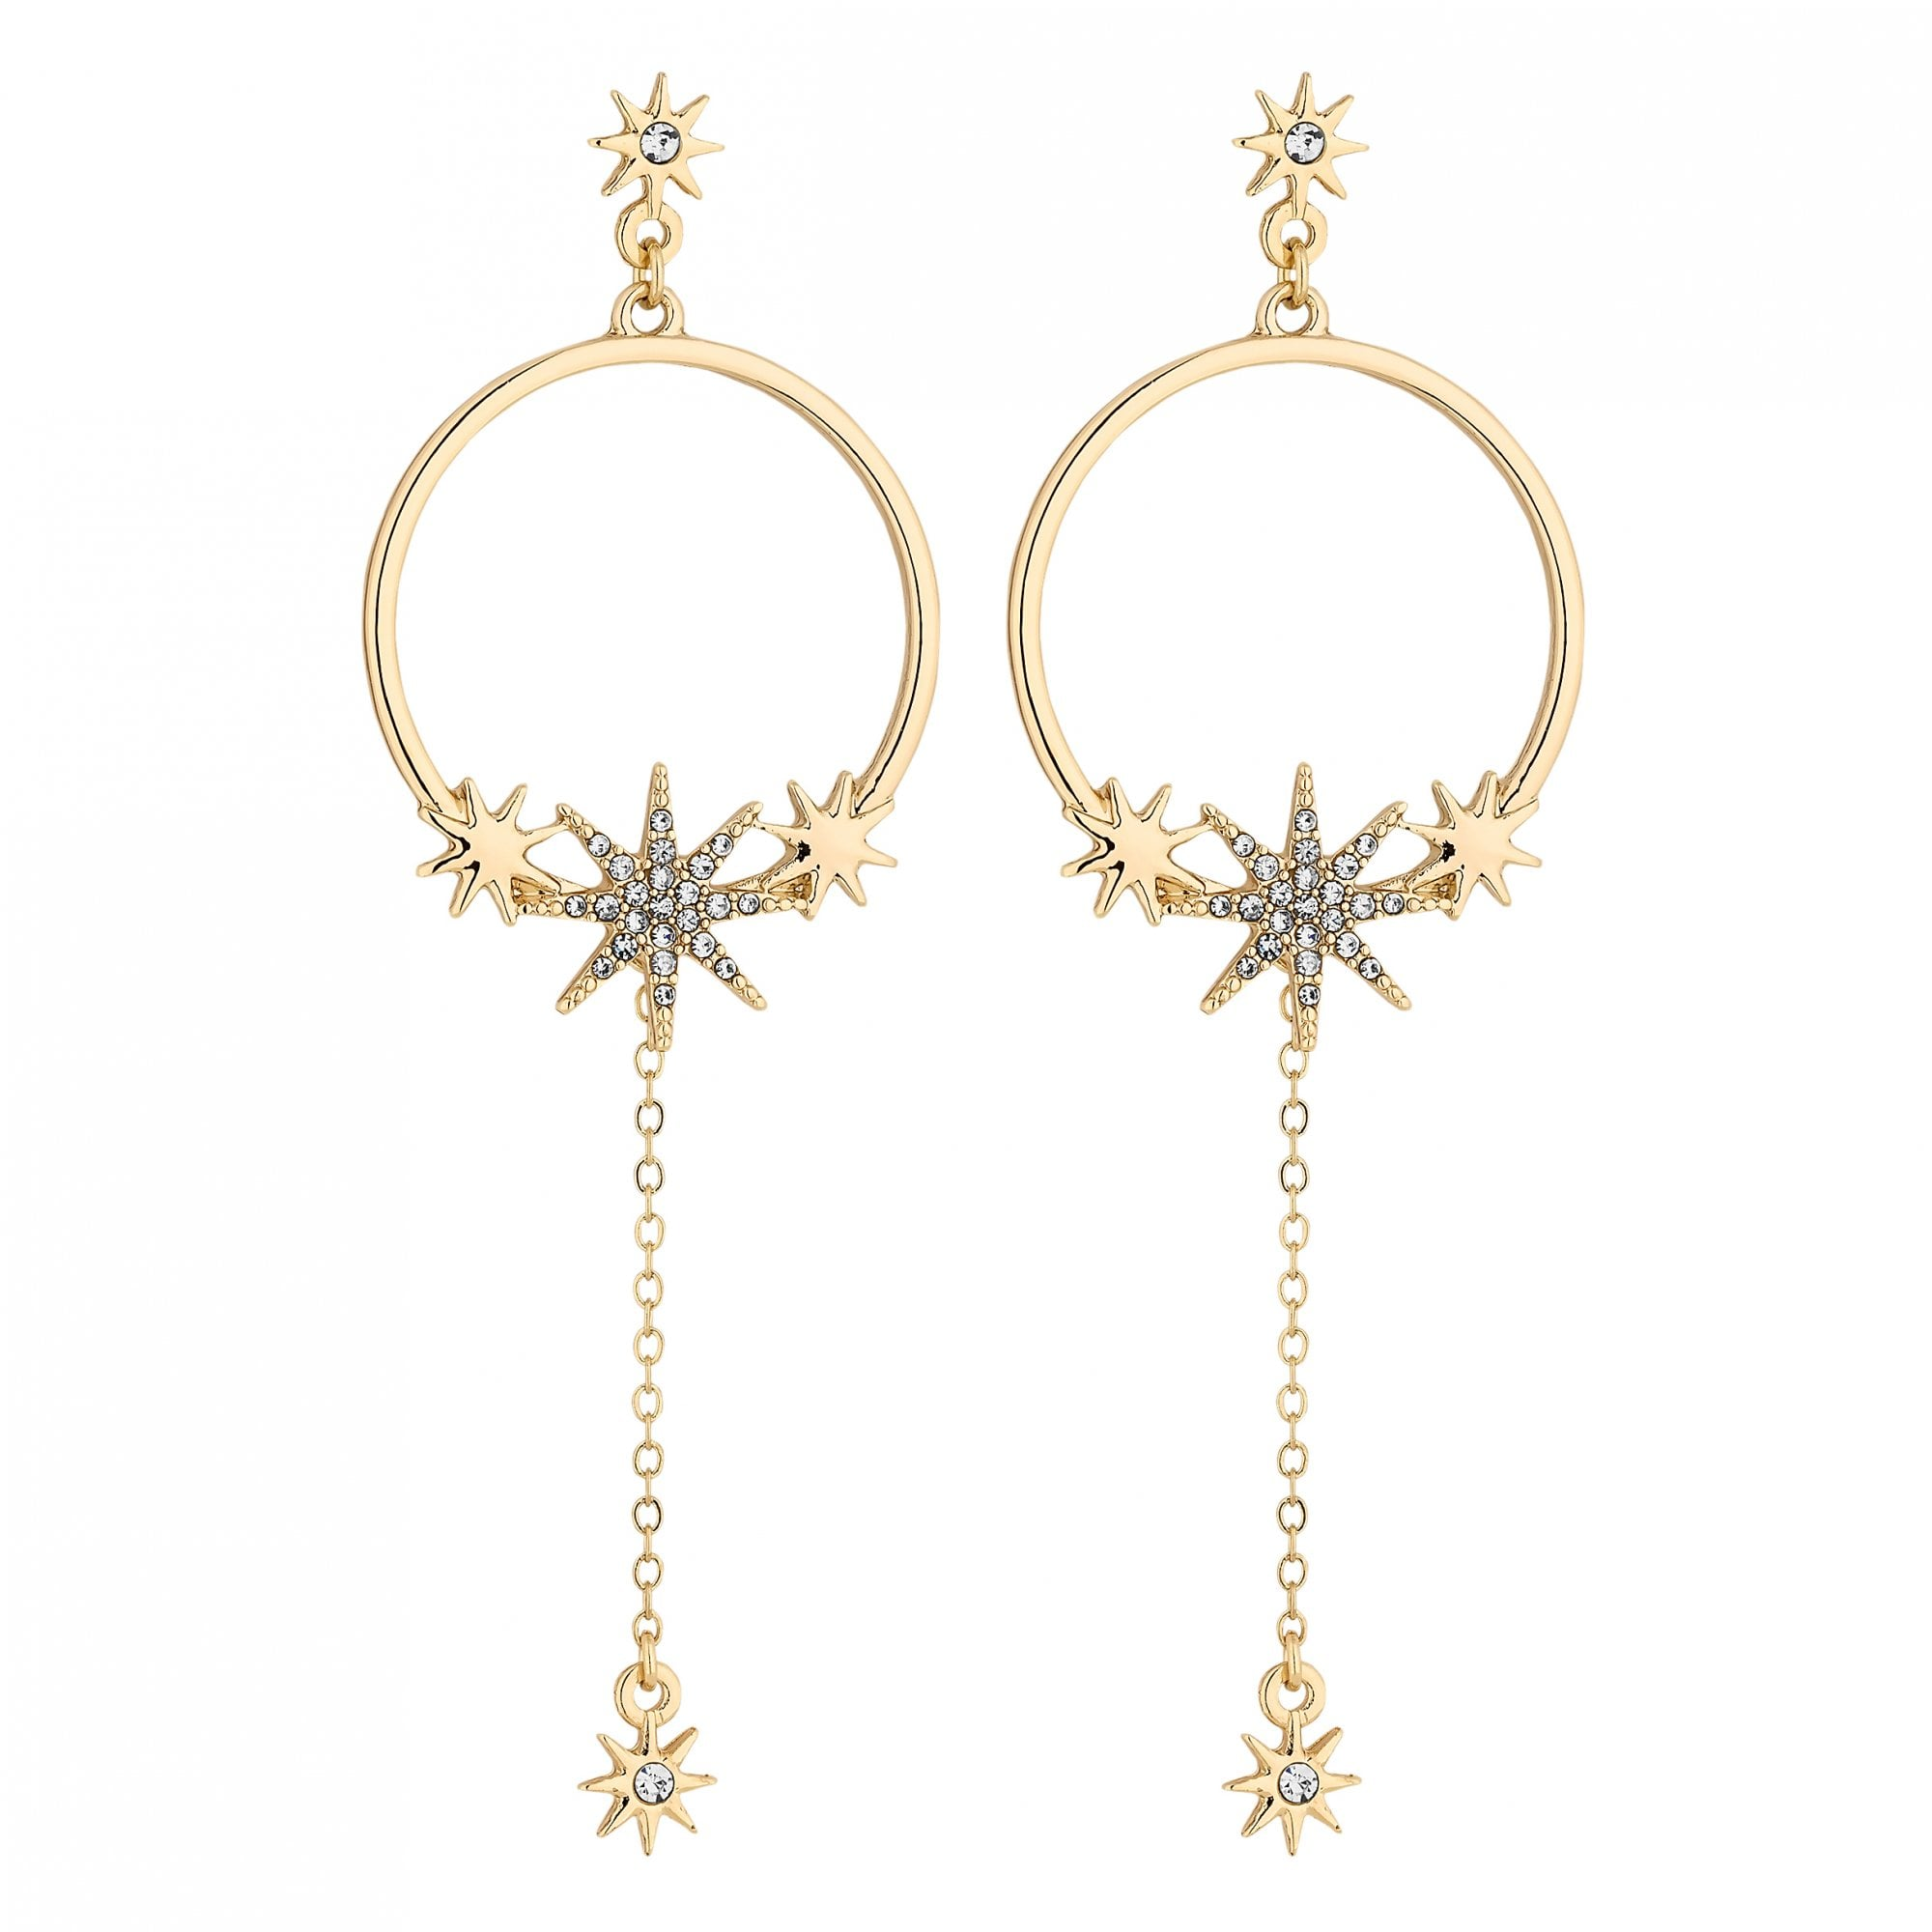 Lipsy Gold Celestial Hoop Drop Earring